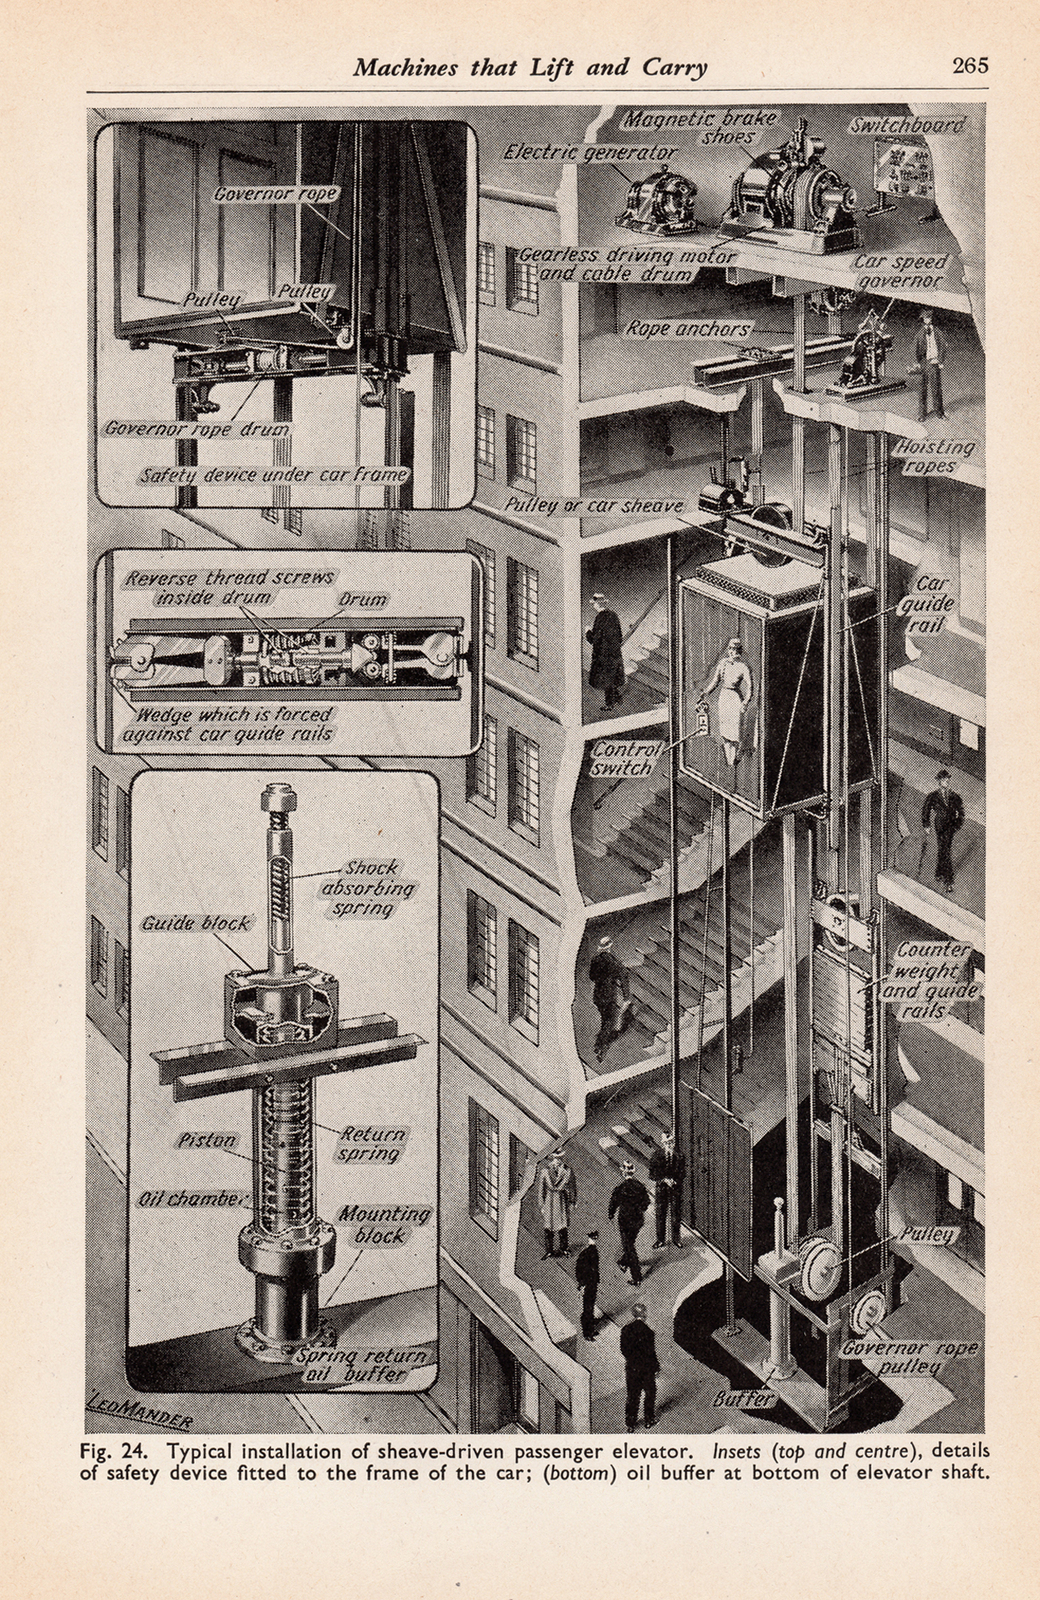 Elevator Shaft Diagram Print Machines Machinery Gears Steampunk 1943 Wall Art